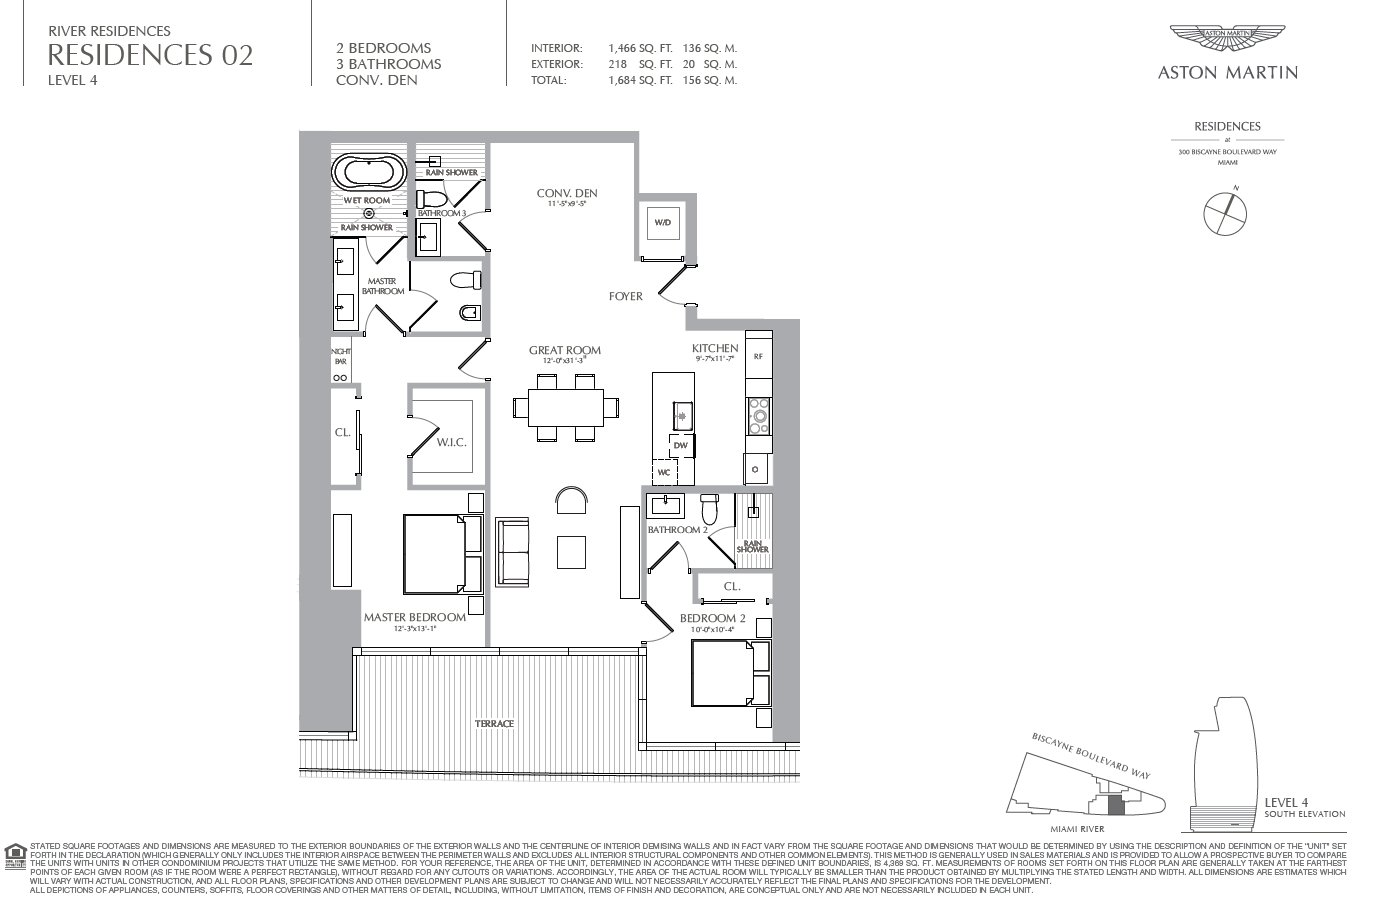 Aston Martin Residences Floor Plan 02